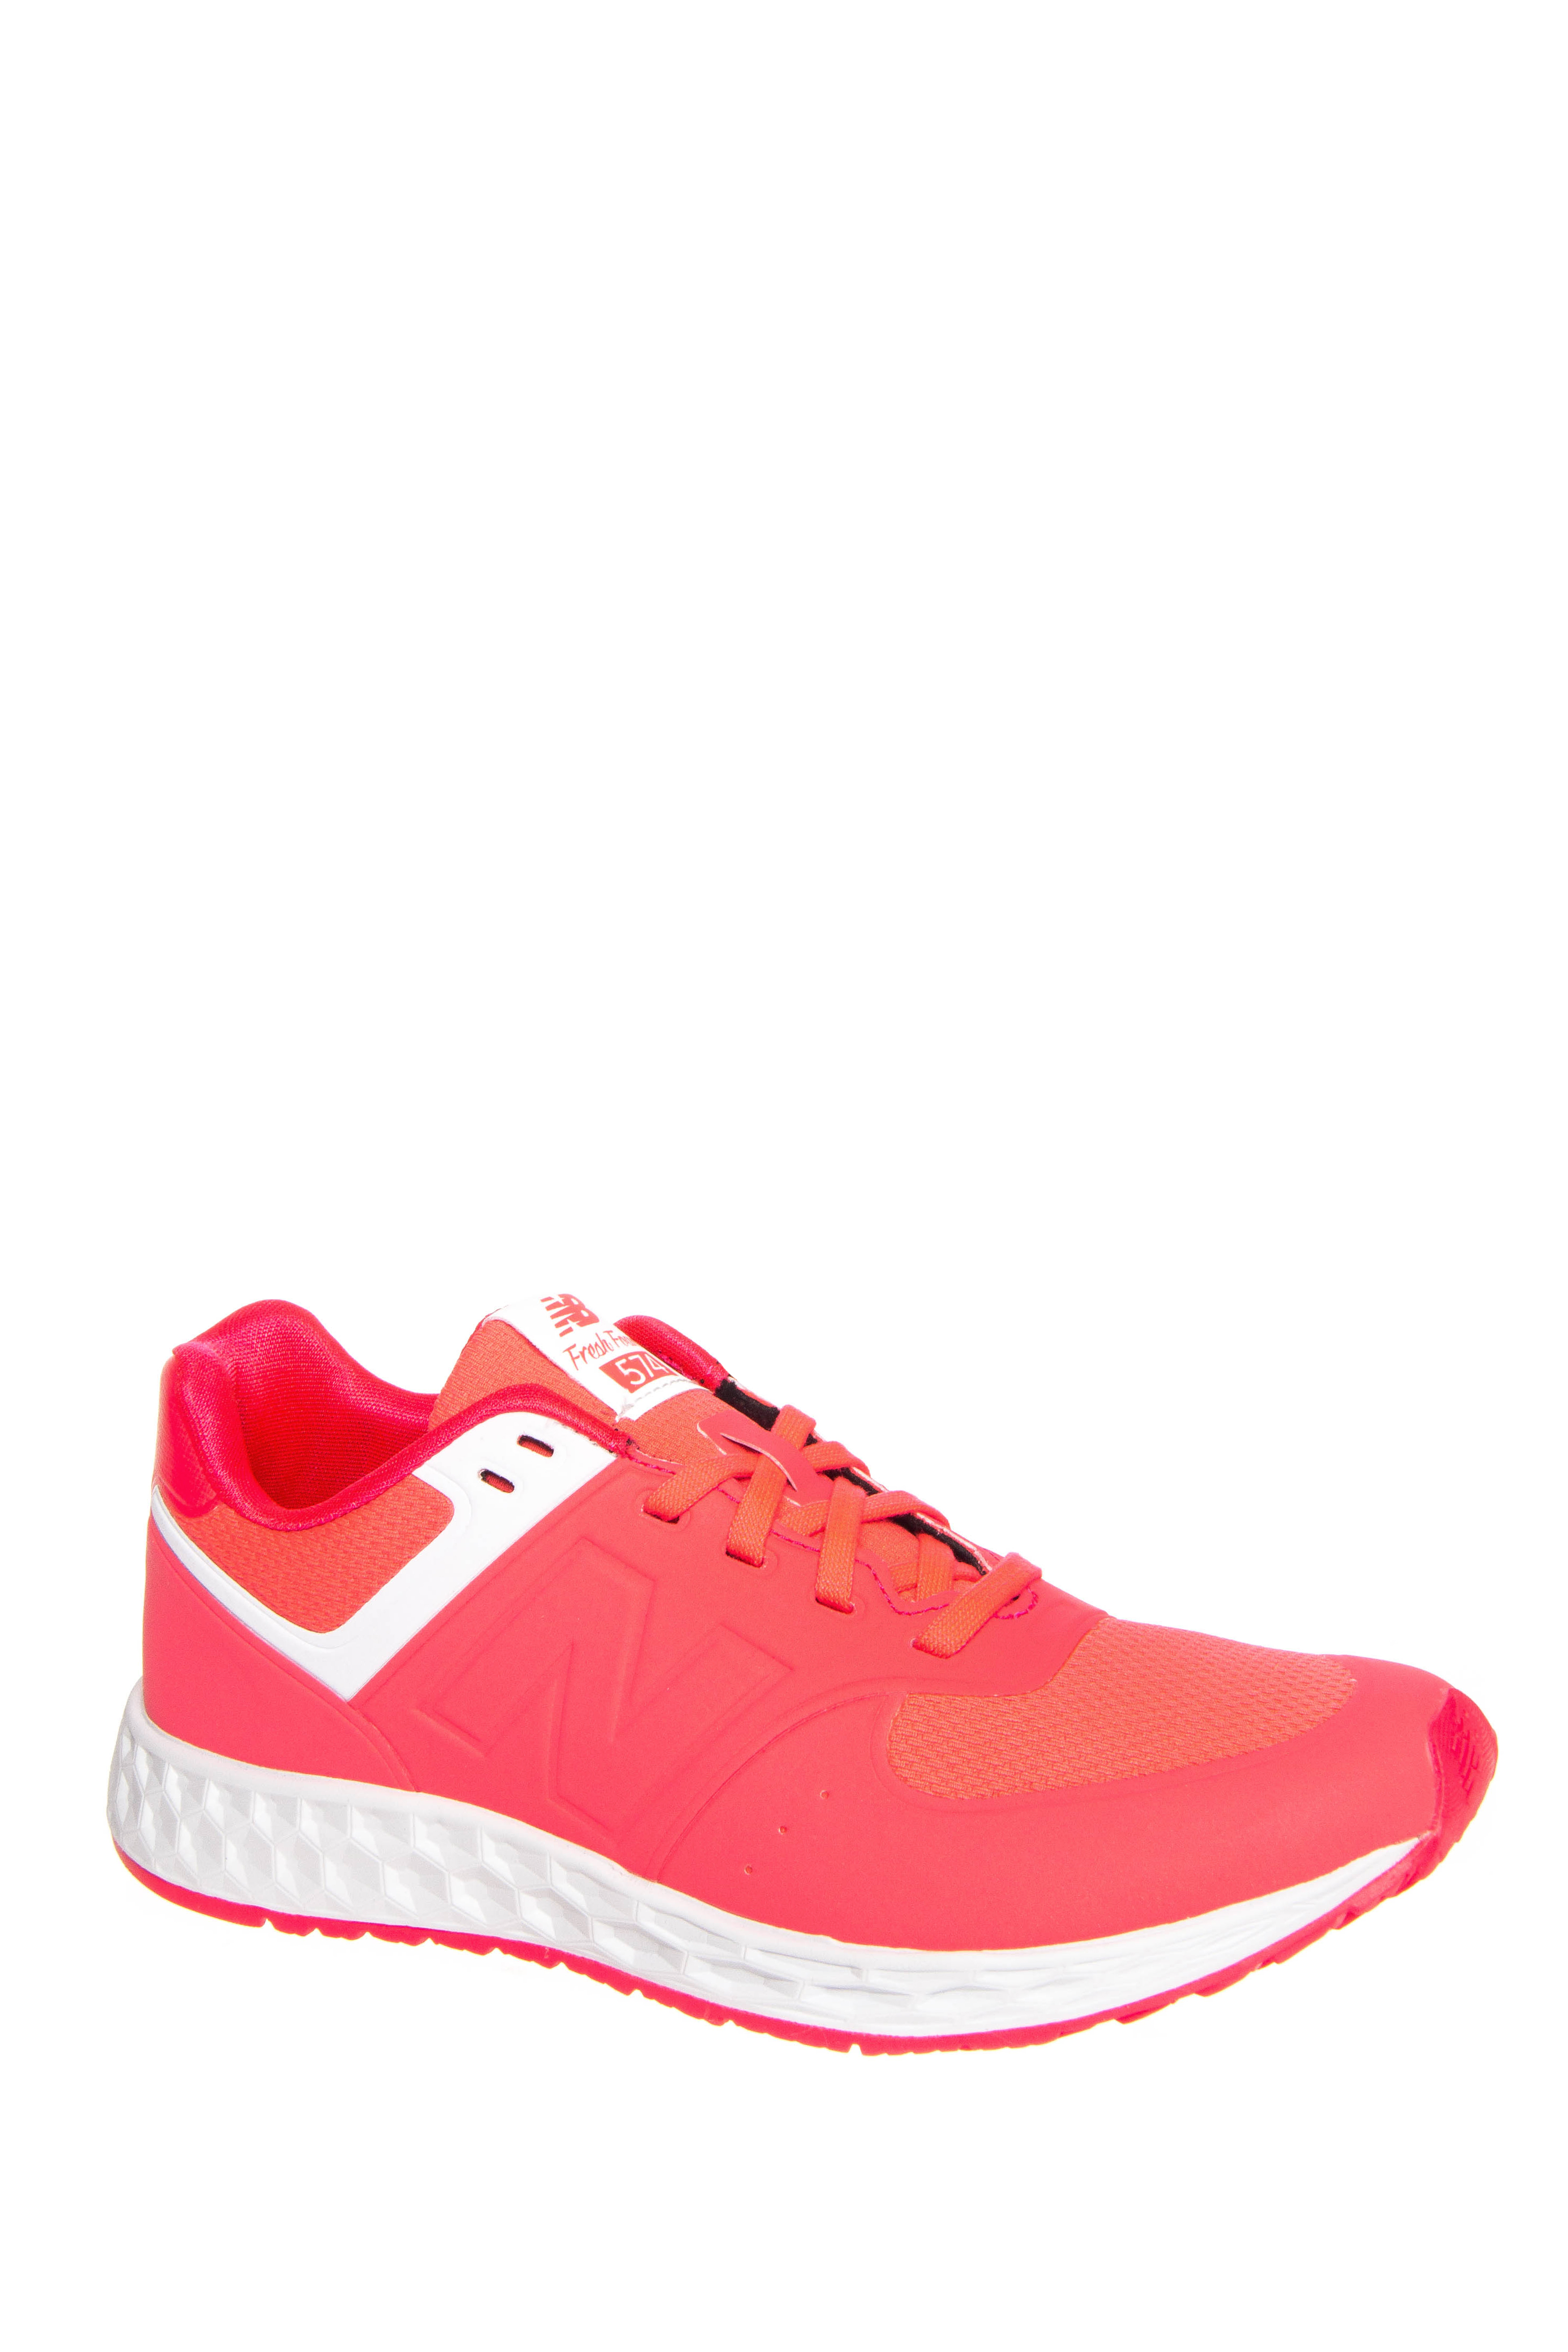 New Balance 574 Fresh Foam Low Top Sneakers - Bright Cherry / White